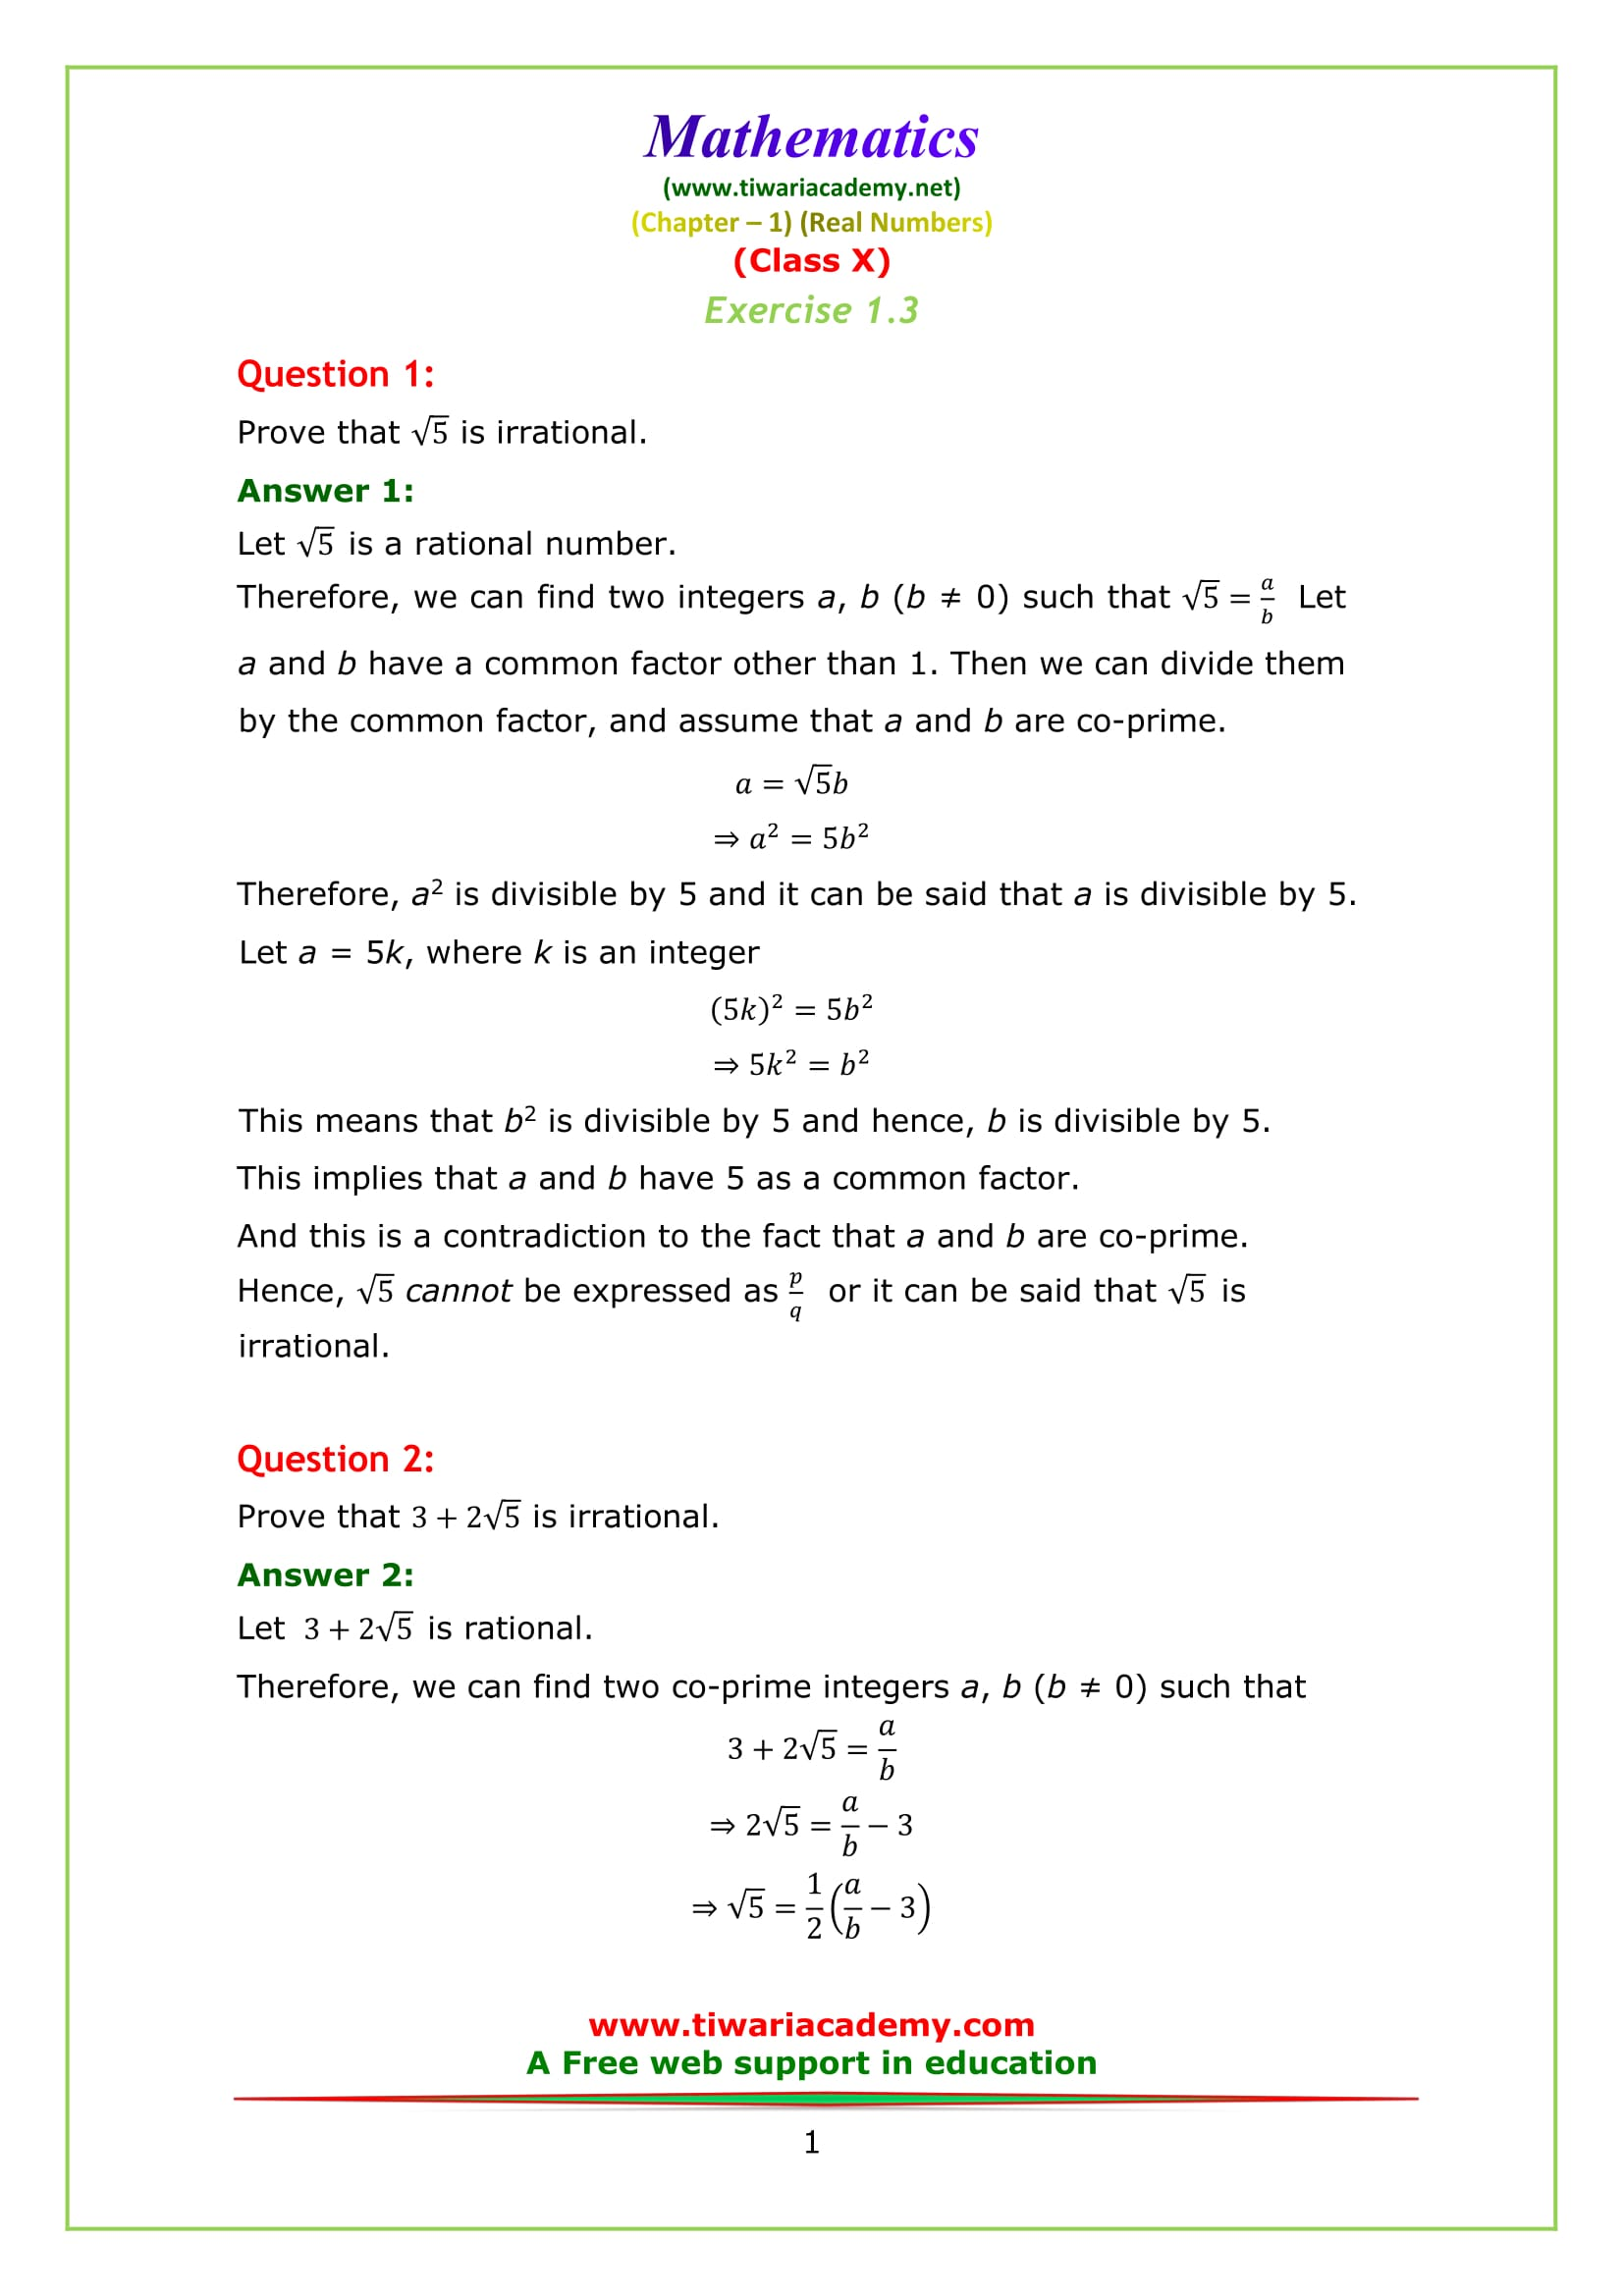 NCERT Solutions for class 10 Maths Chapter 1 Exercise 1.3 Question 1 & 2